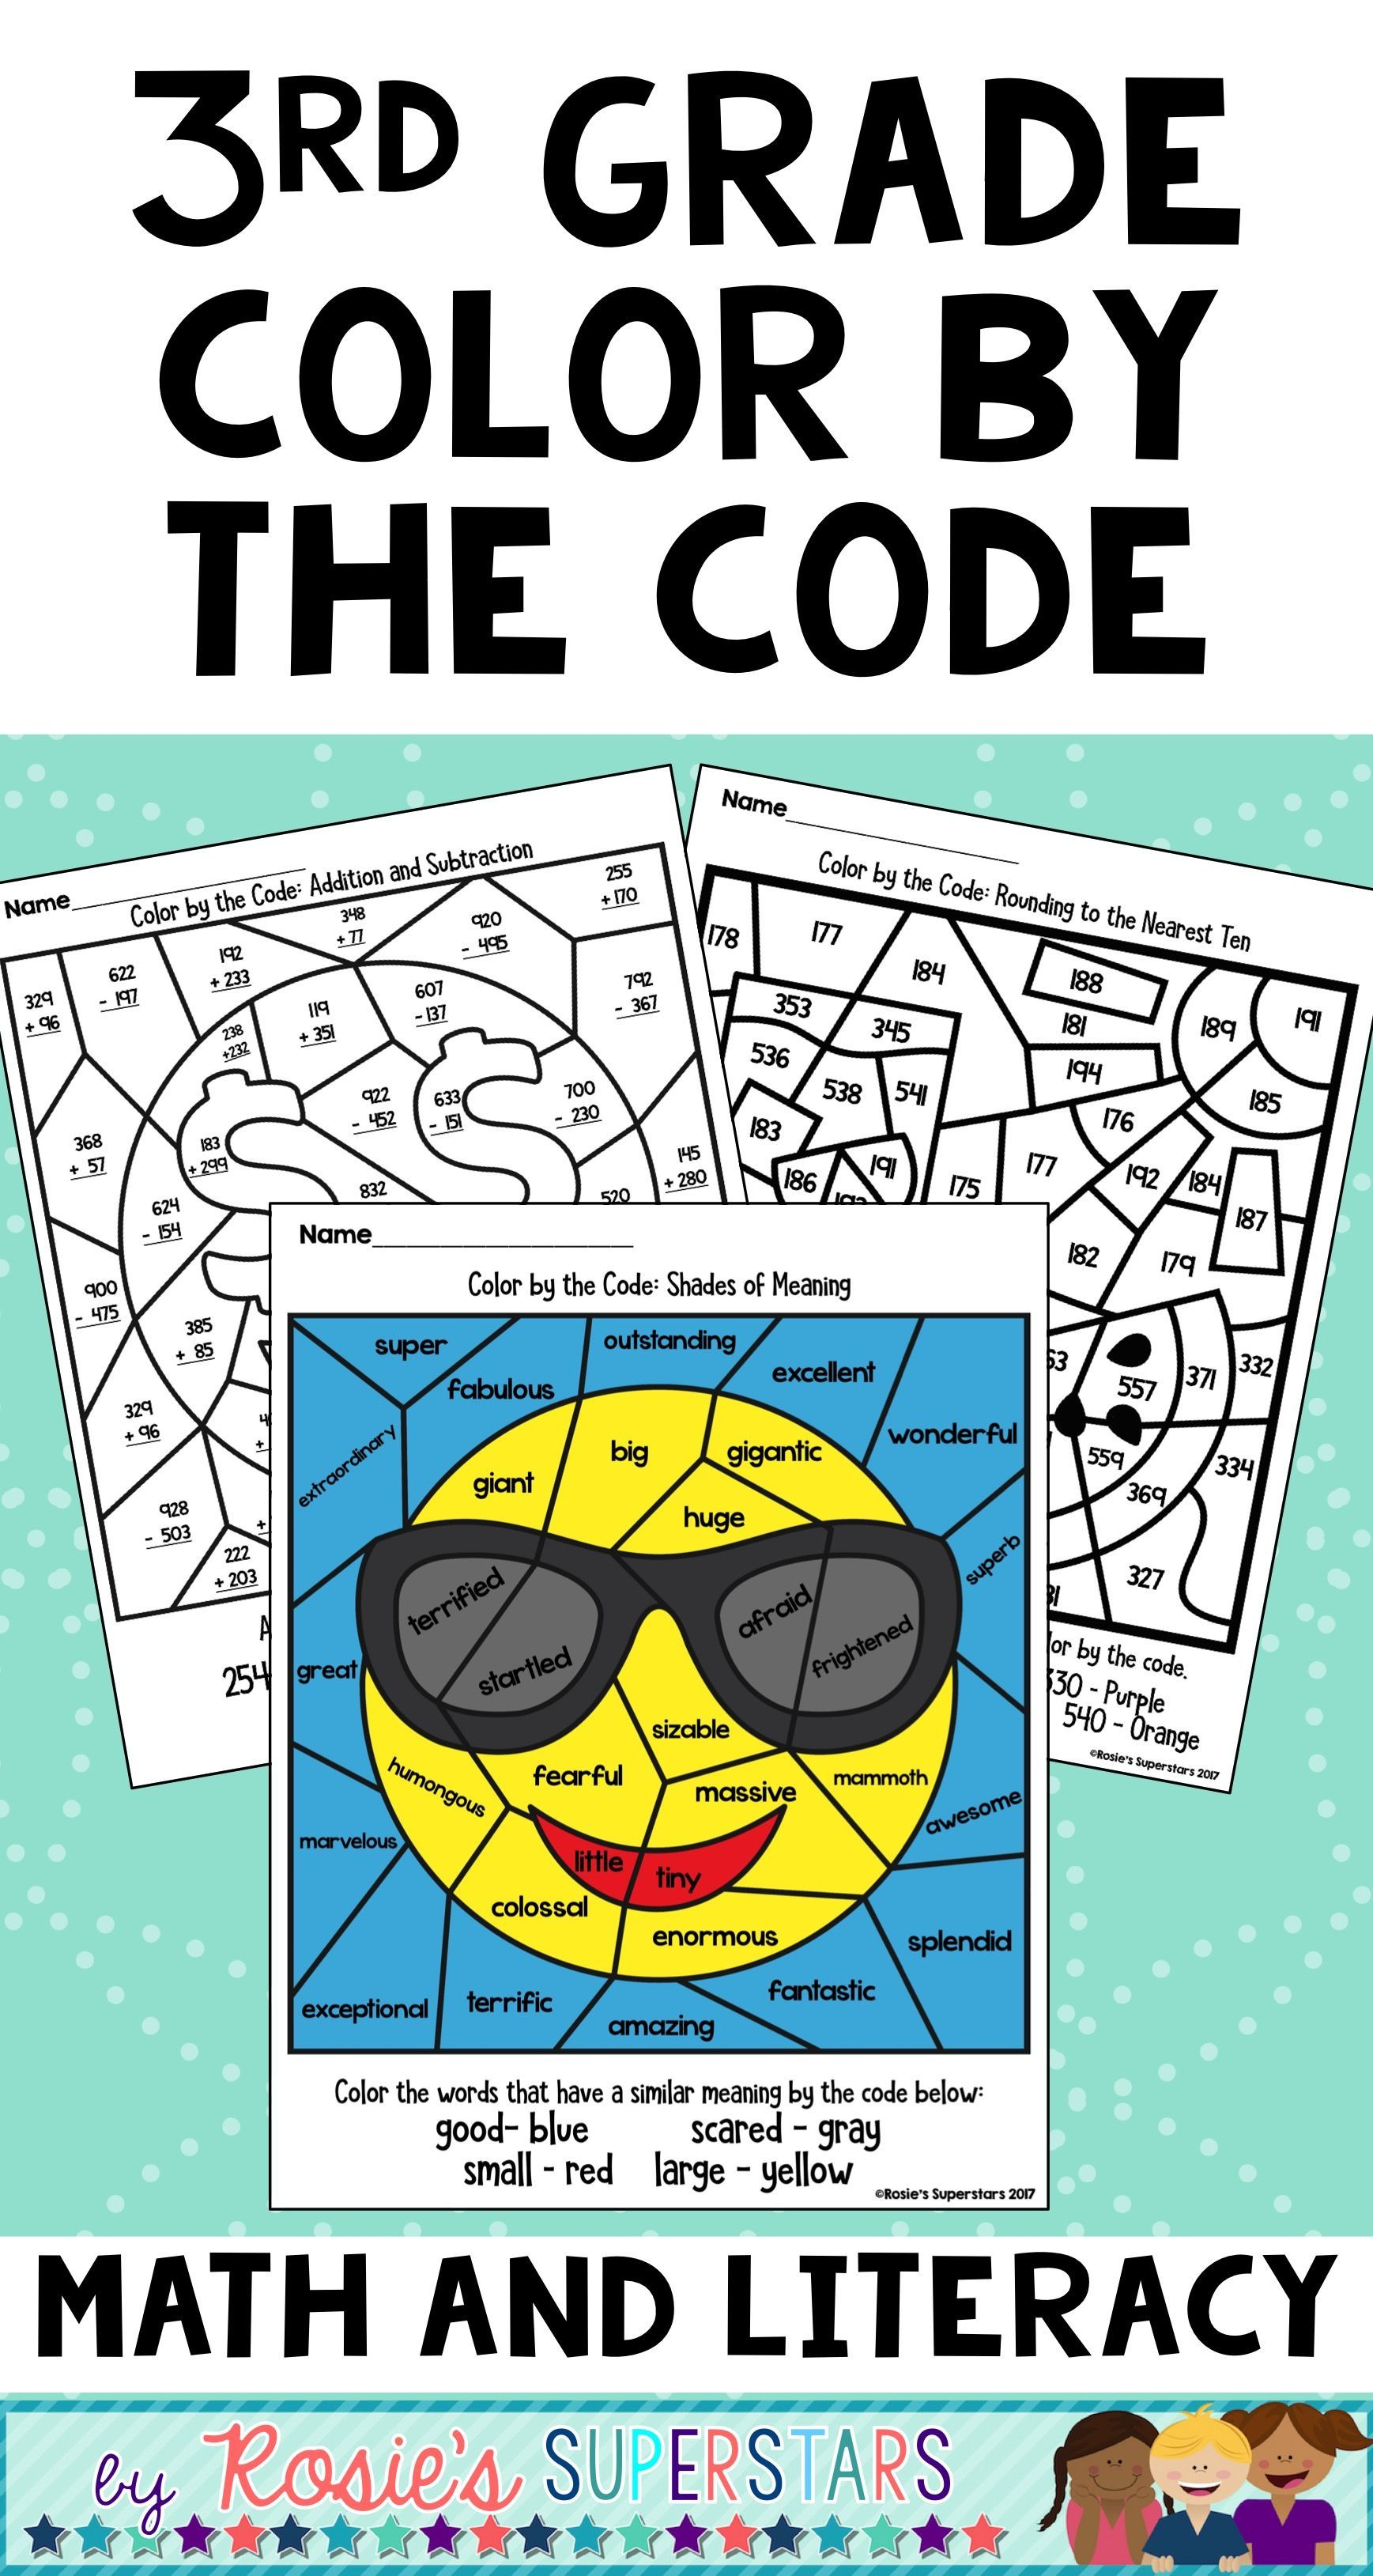 3rd Grade Math and Literacy Color by the Code Activities | Pinterest ...